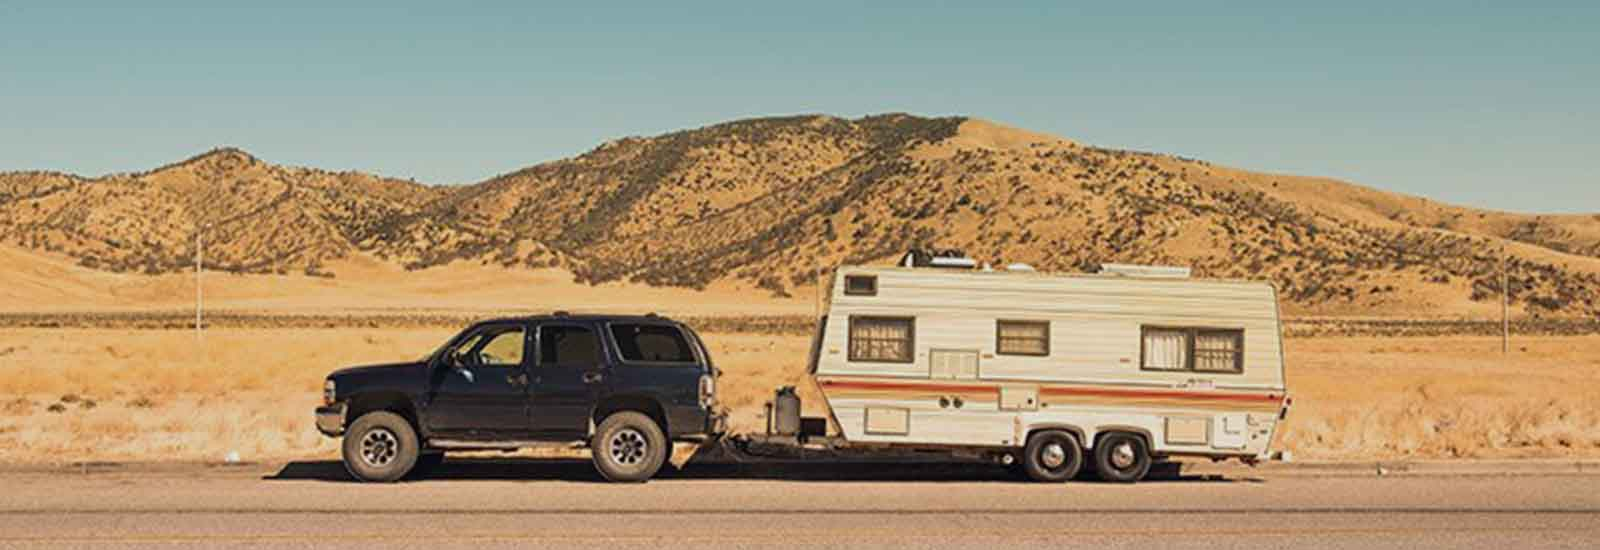 Coverages Available for Travel Trailers